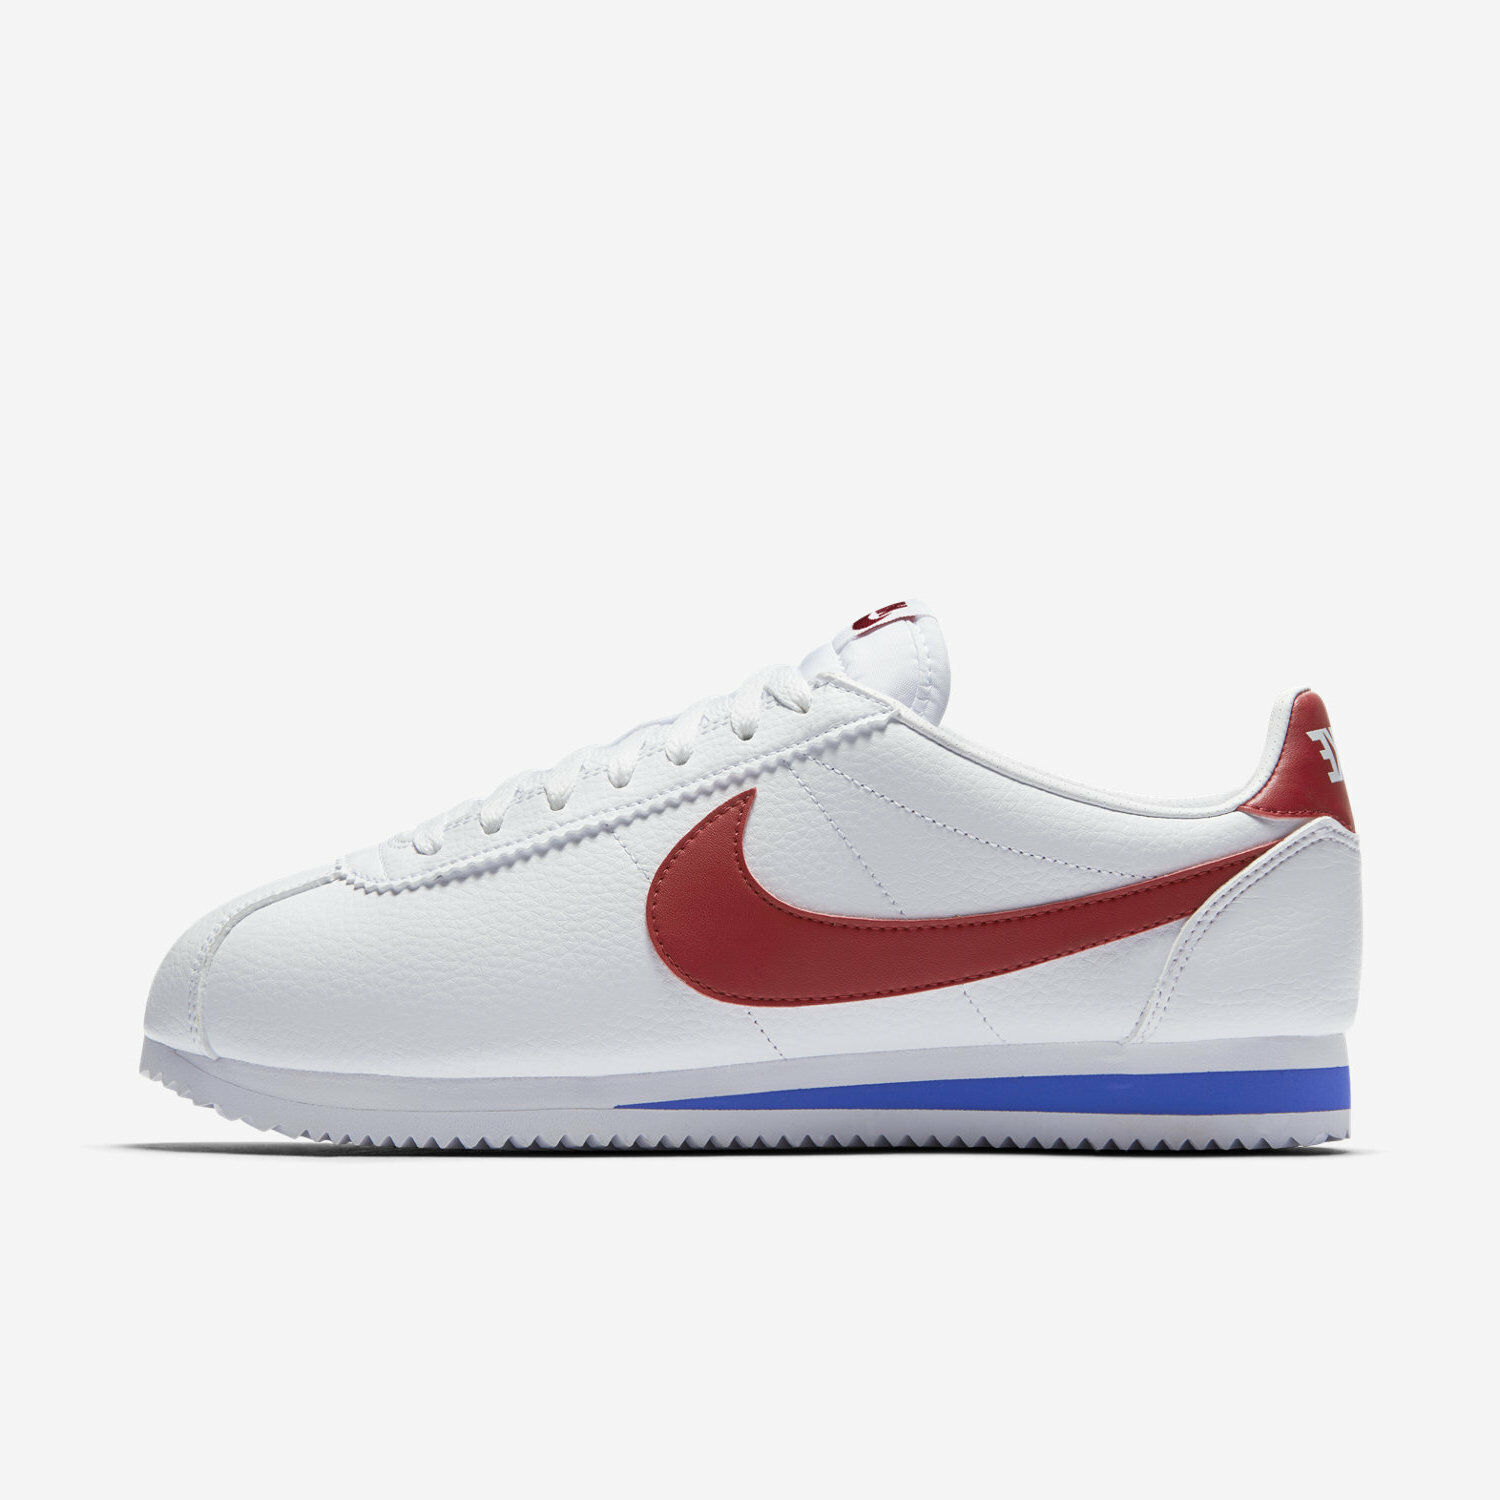 Comfortable and good-looking NIKE CLASSIC CORTEZ LEATHER FORREST GUMP 749571-154 WHITE VARSITY ROYAL RED BLUE